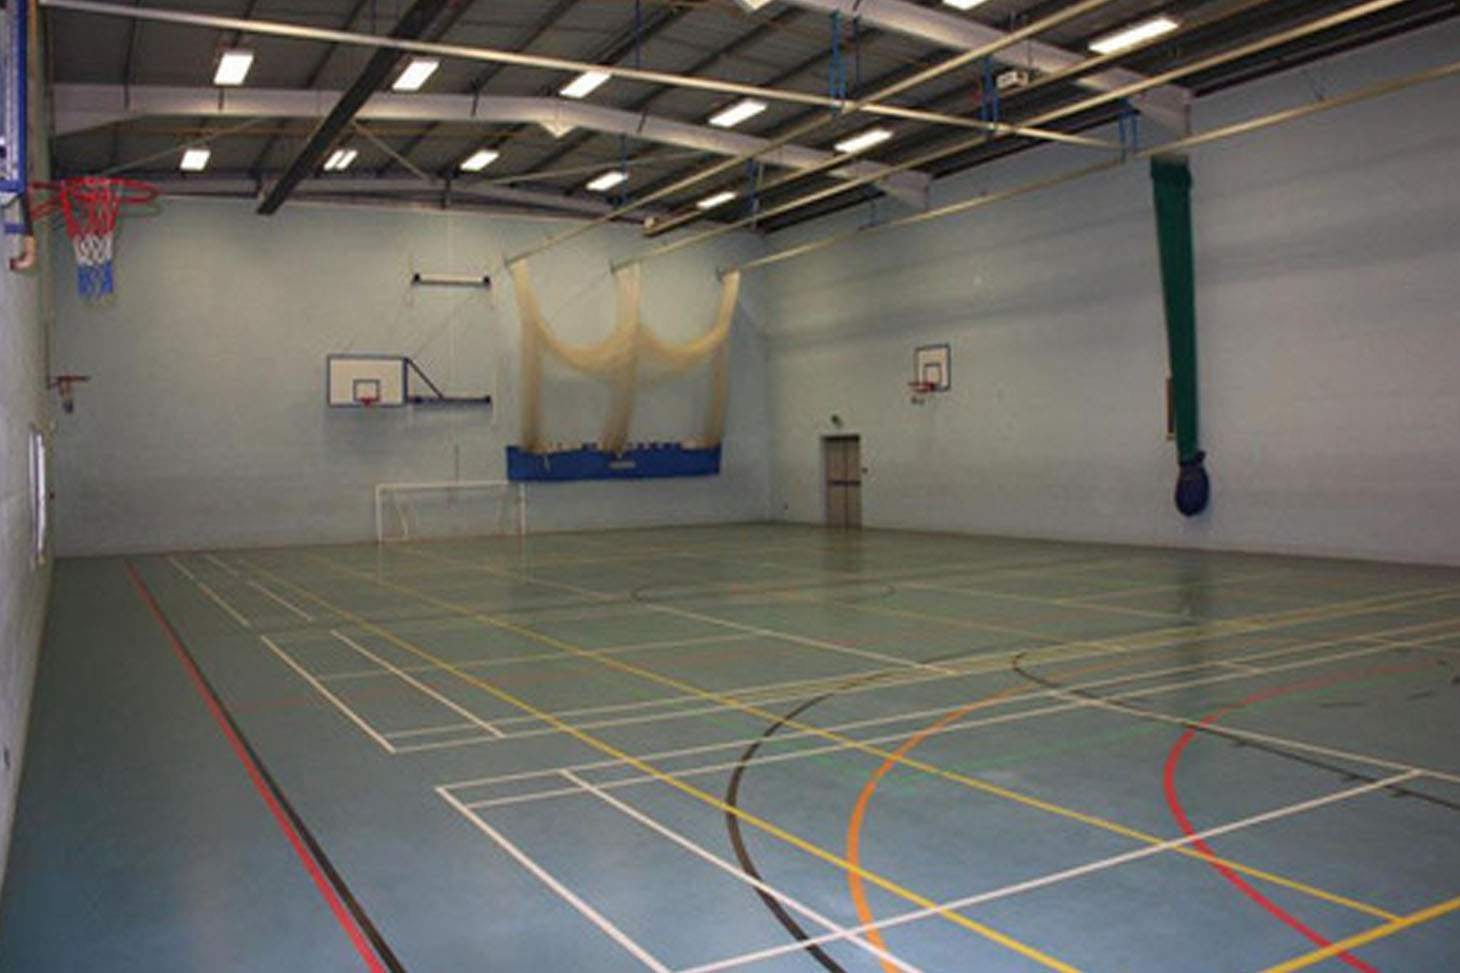 Bishop Rawstorne CE Academy Nets | Sports hall cricket facilities